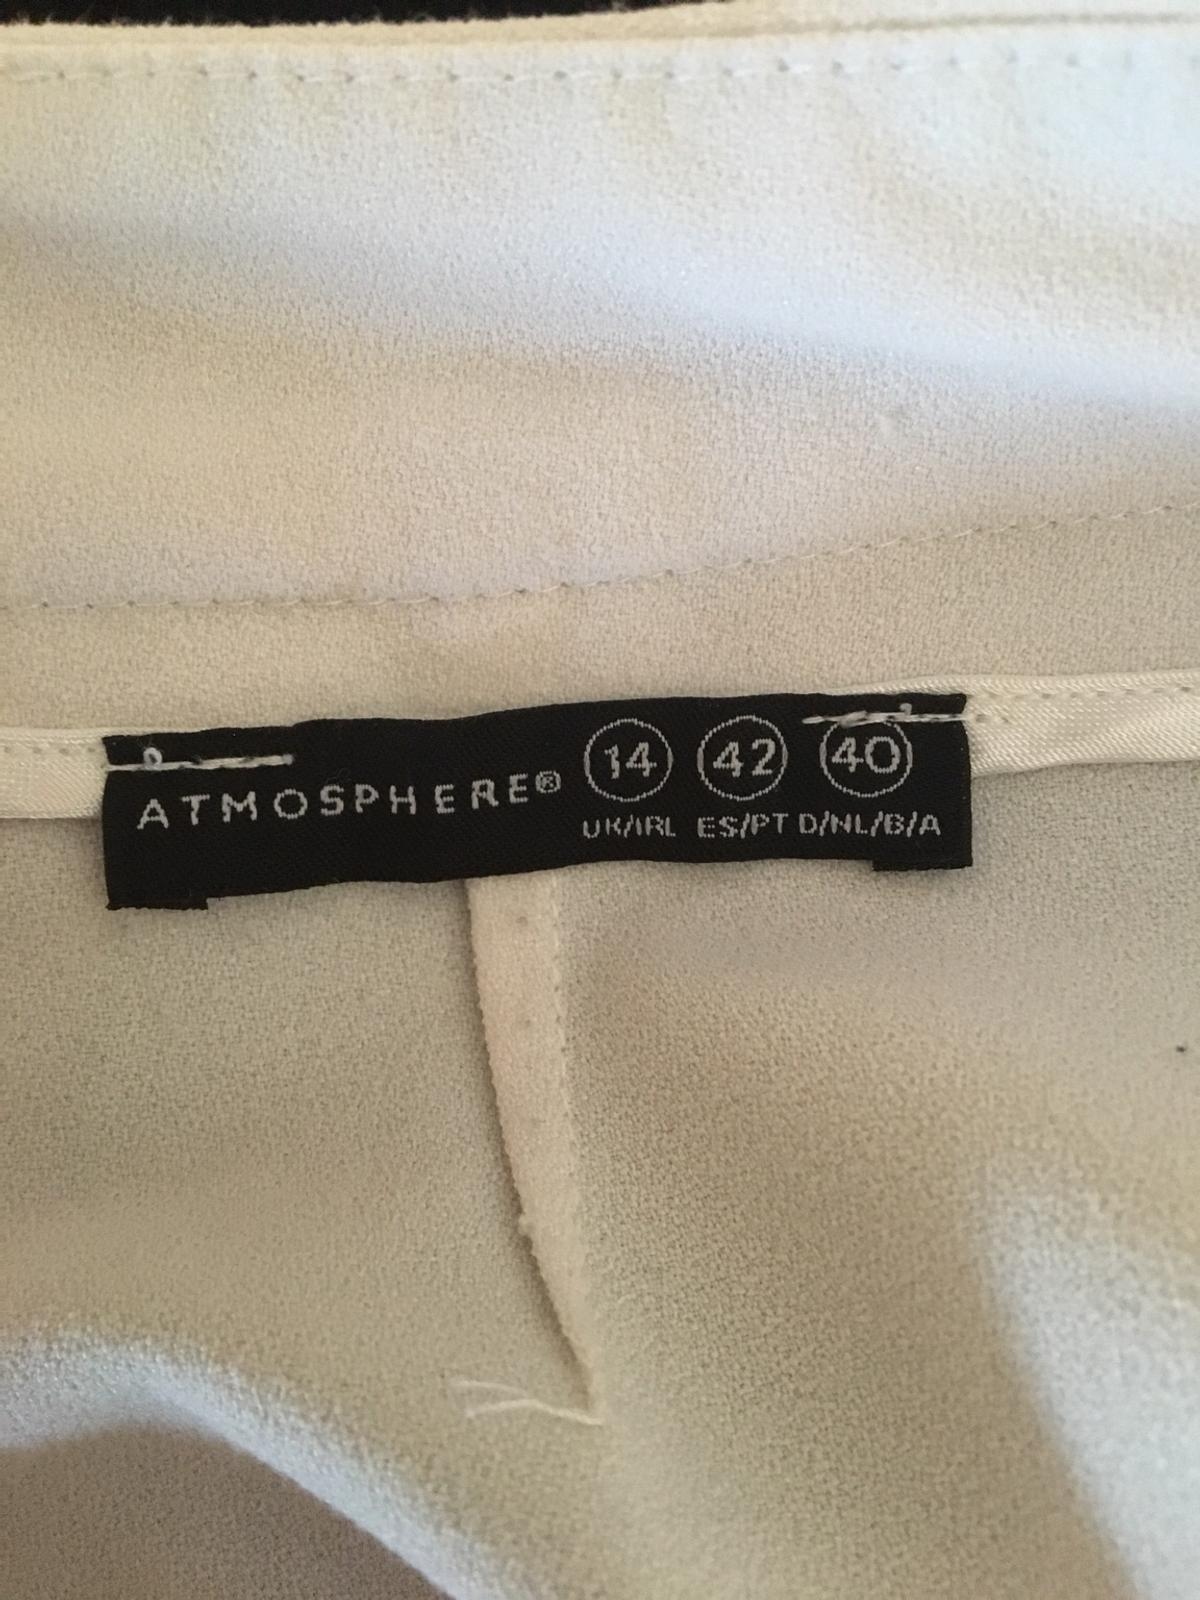 Ladies Atmosphere hot pants/shorts. Very good condition. Size 14. Royal Mail delivery only or delivery